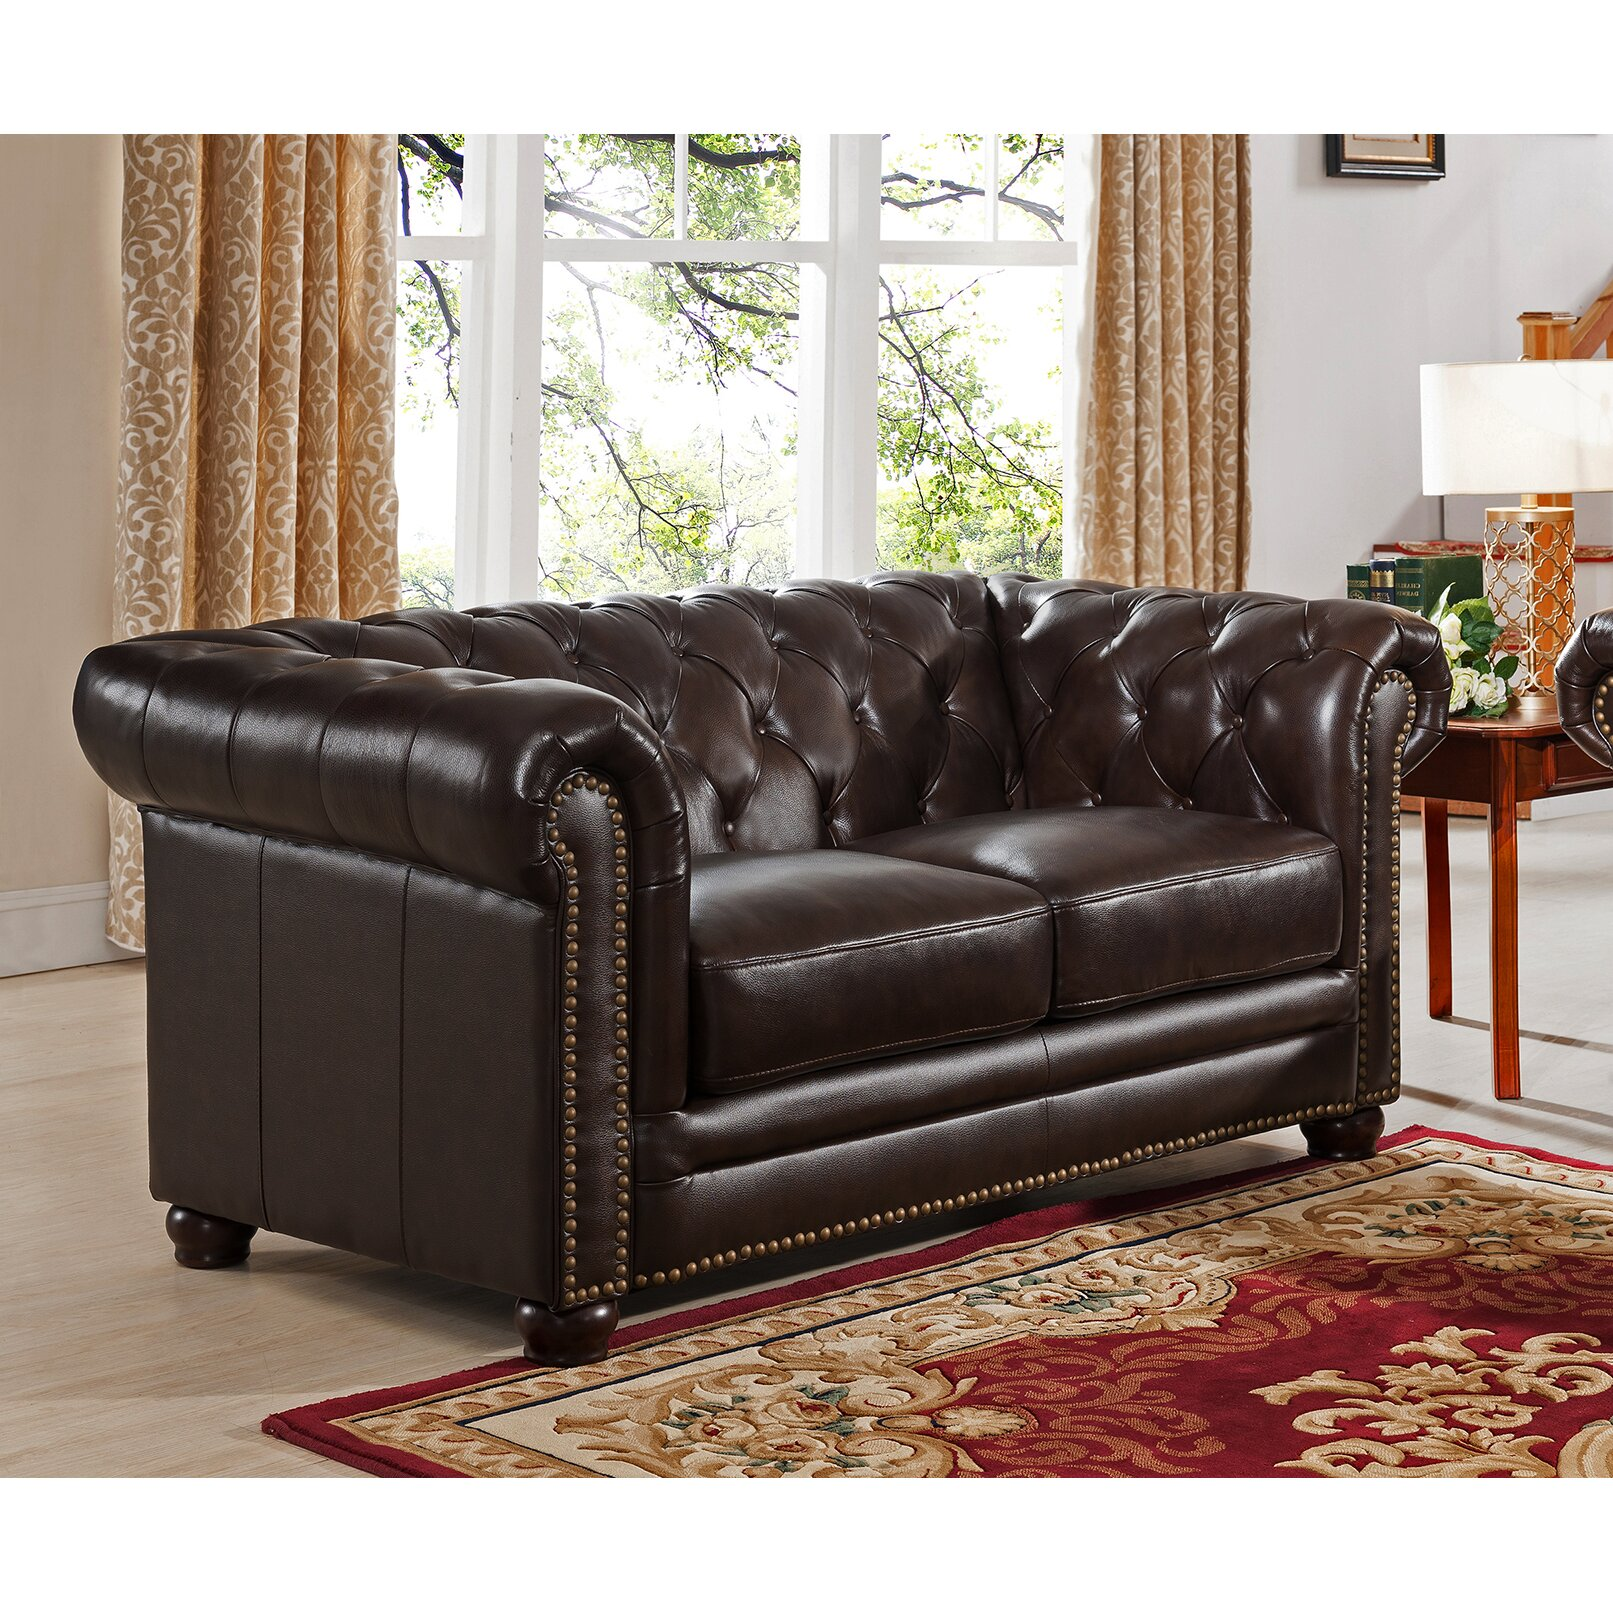 Amax kensington top grain leather chesterfield sofa and for Leather sofa and loveseat set